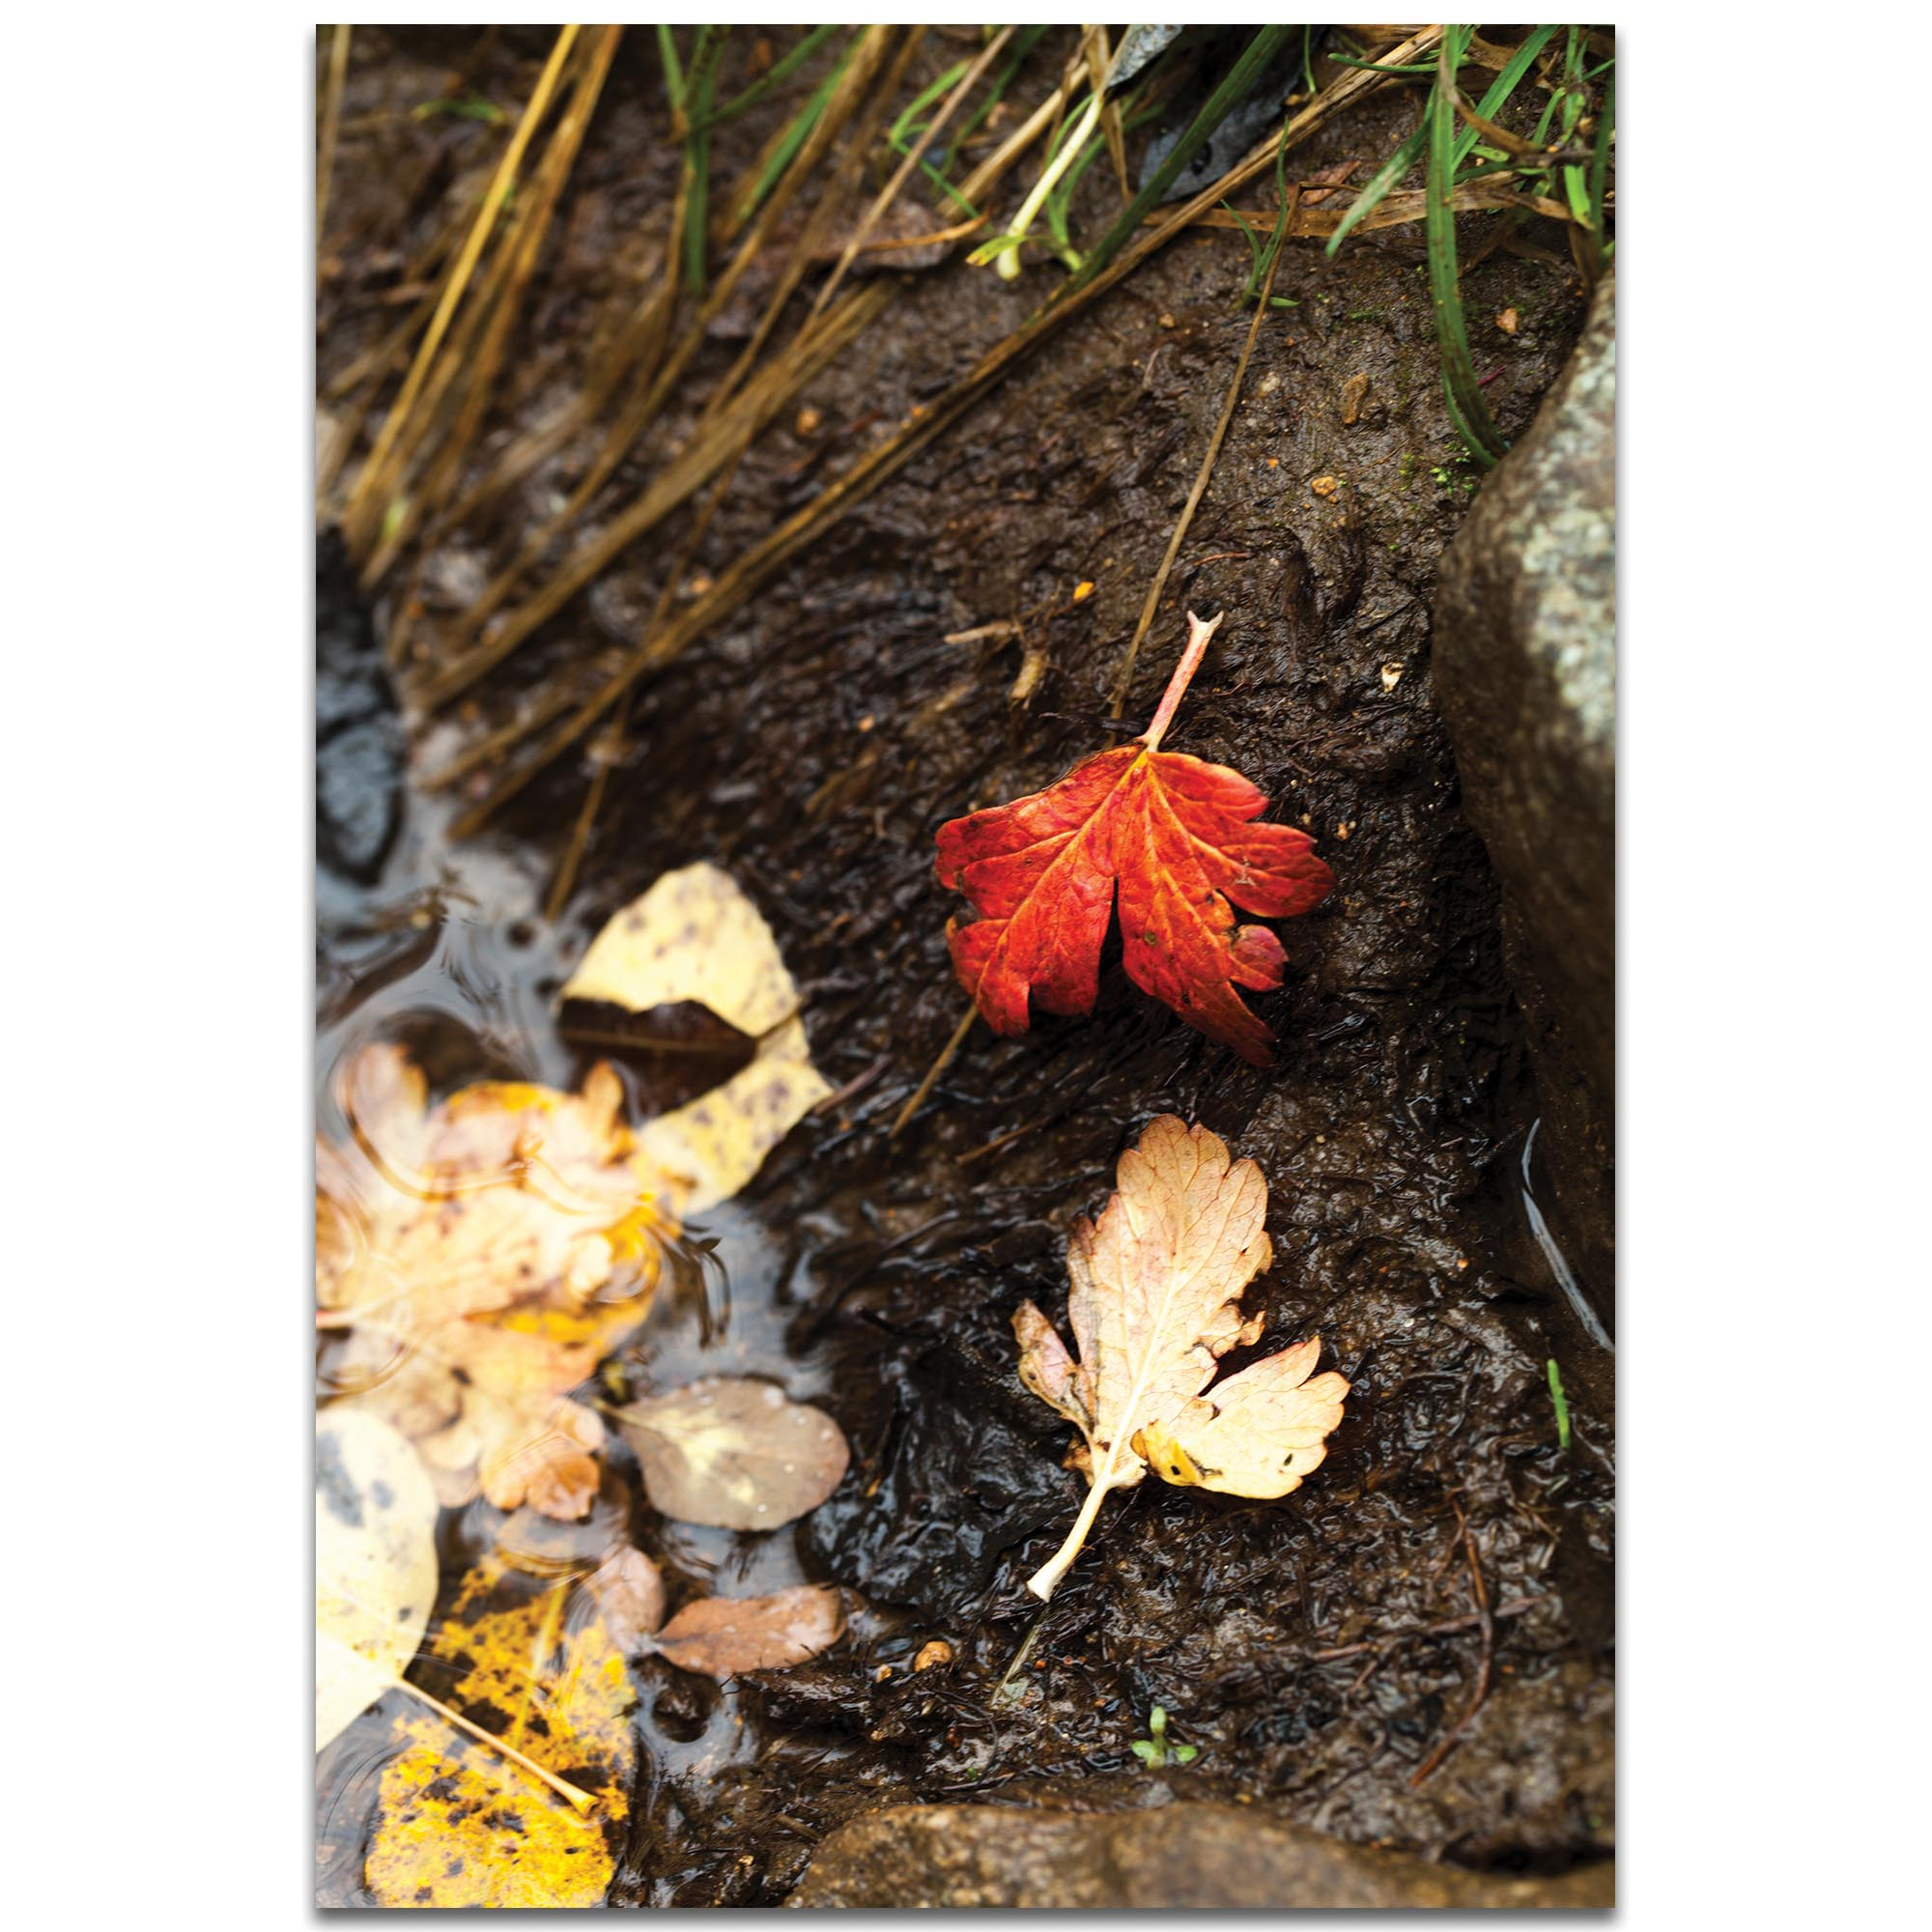 Nature Photography 'Red Leaf' - Autumn Leaves Art on Metal or Plexiglass